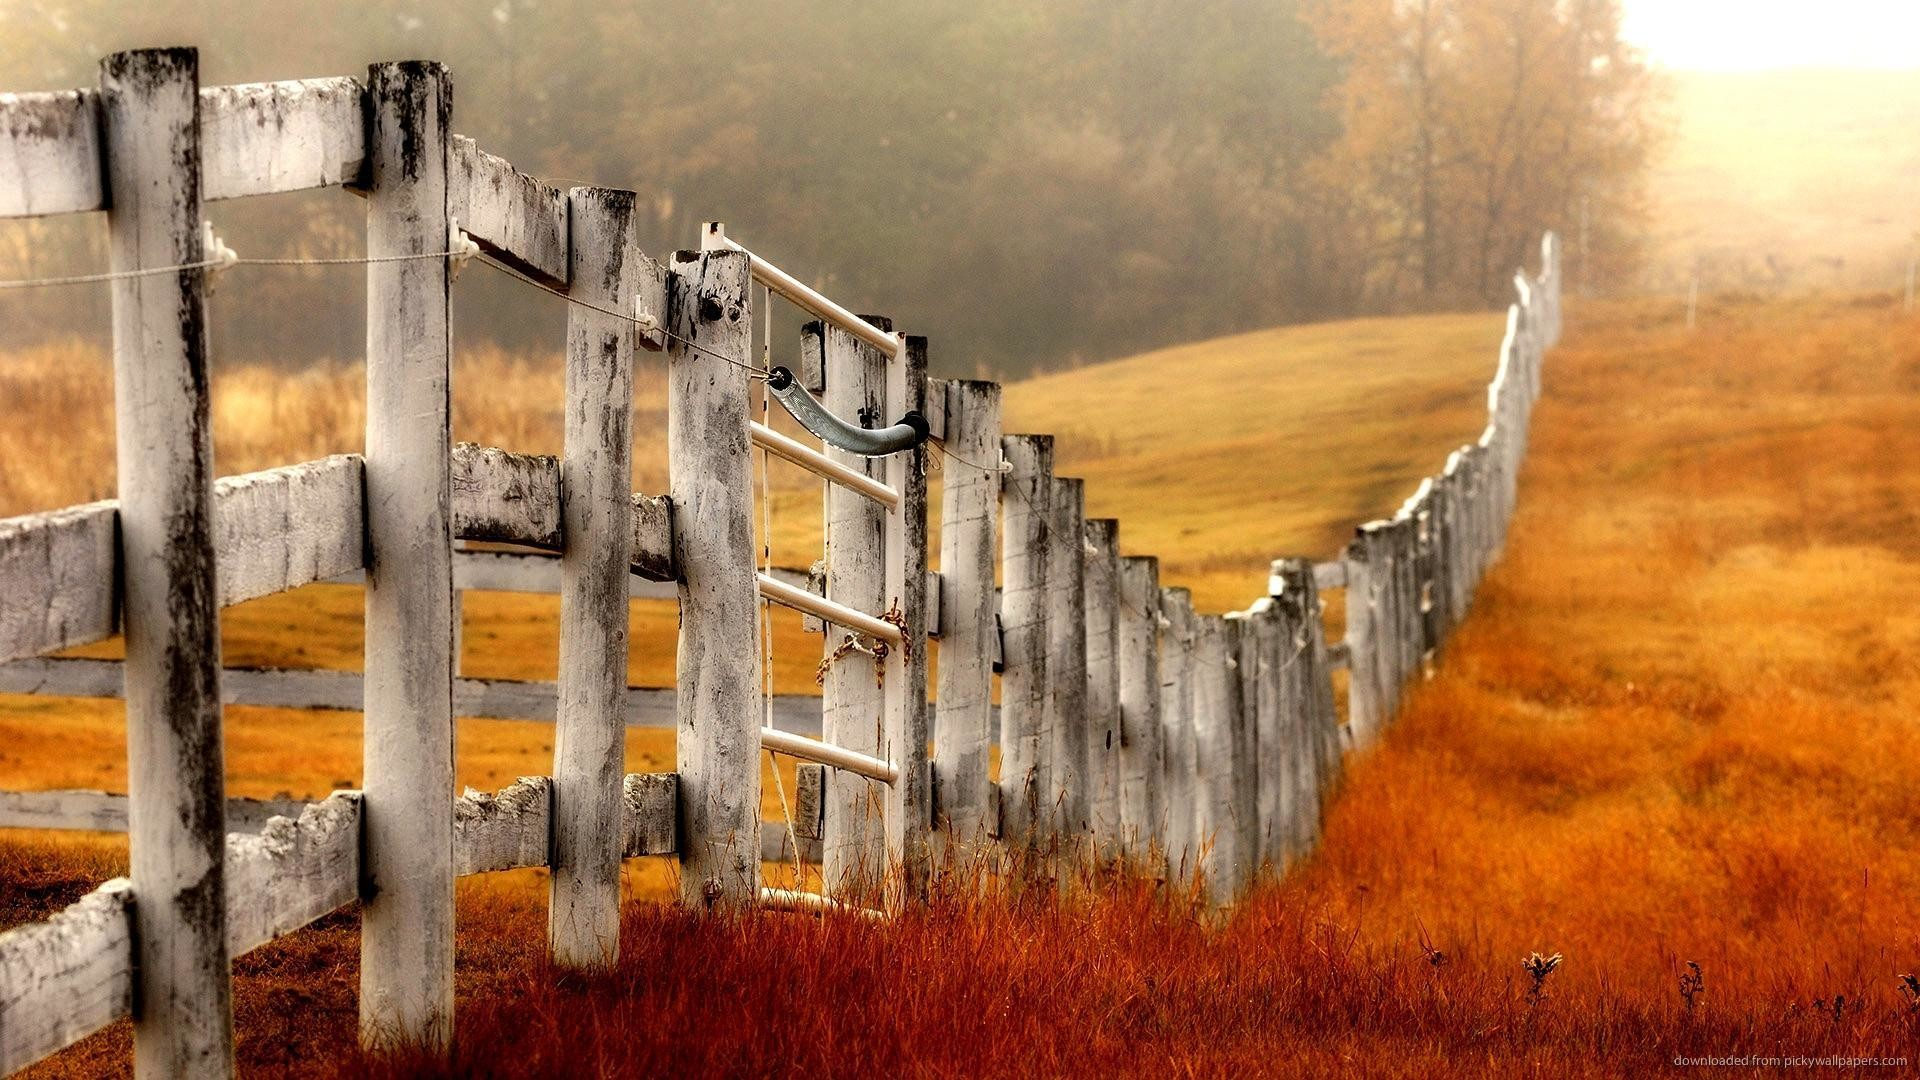 1920x1080 IPad Country Farm Fence Wallpaper Screensaver For Kindle3 And DX